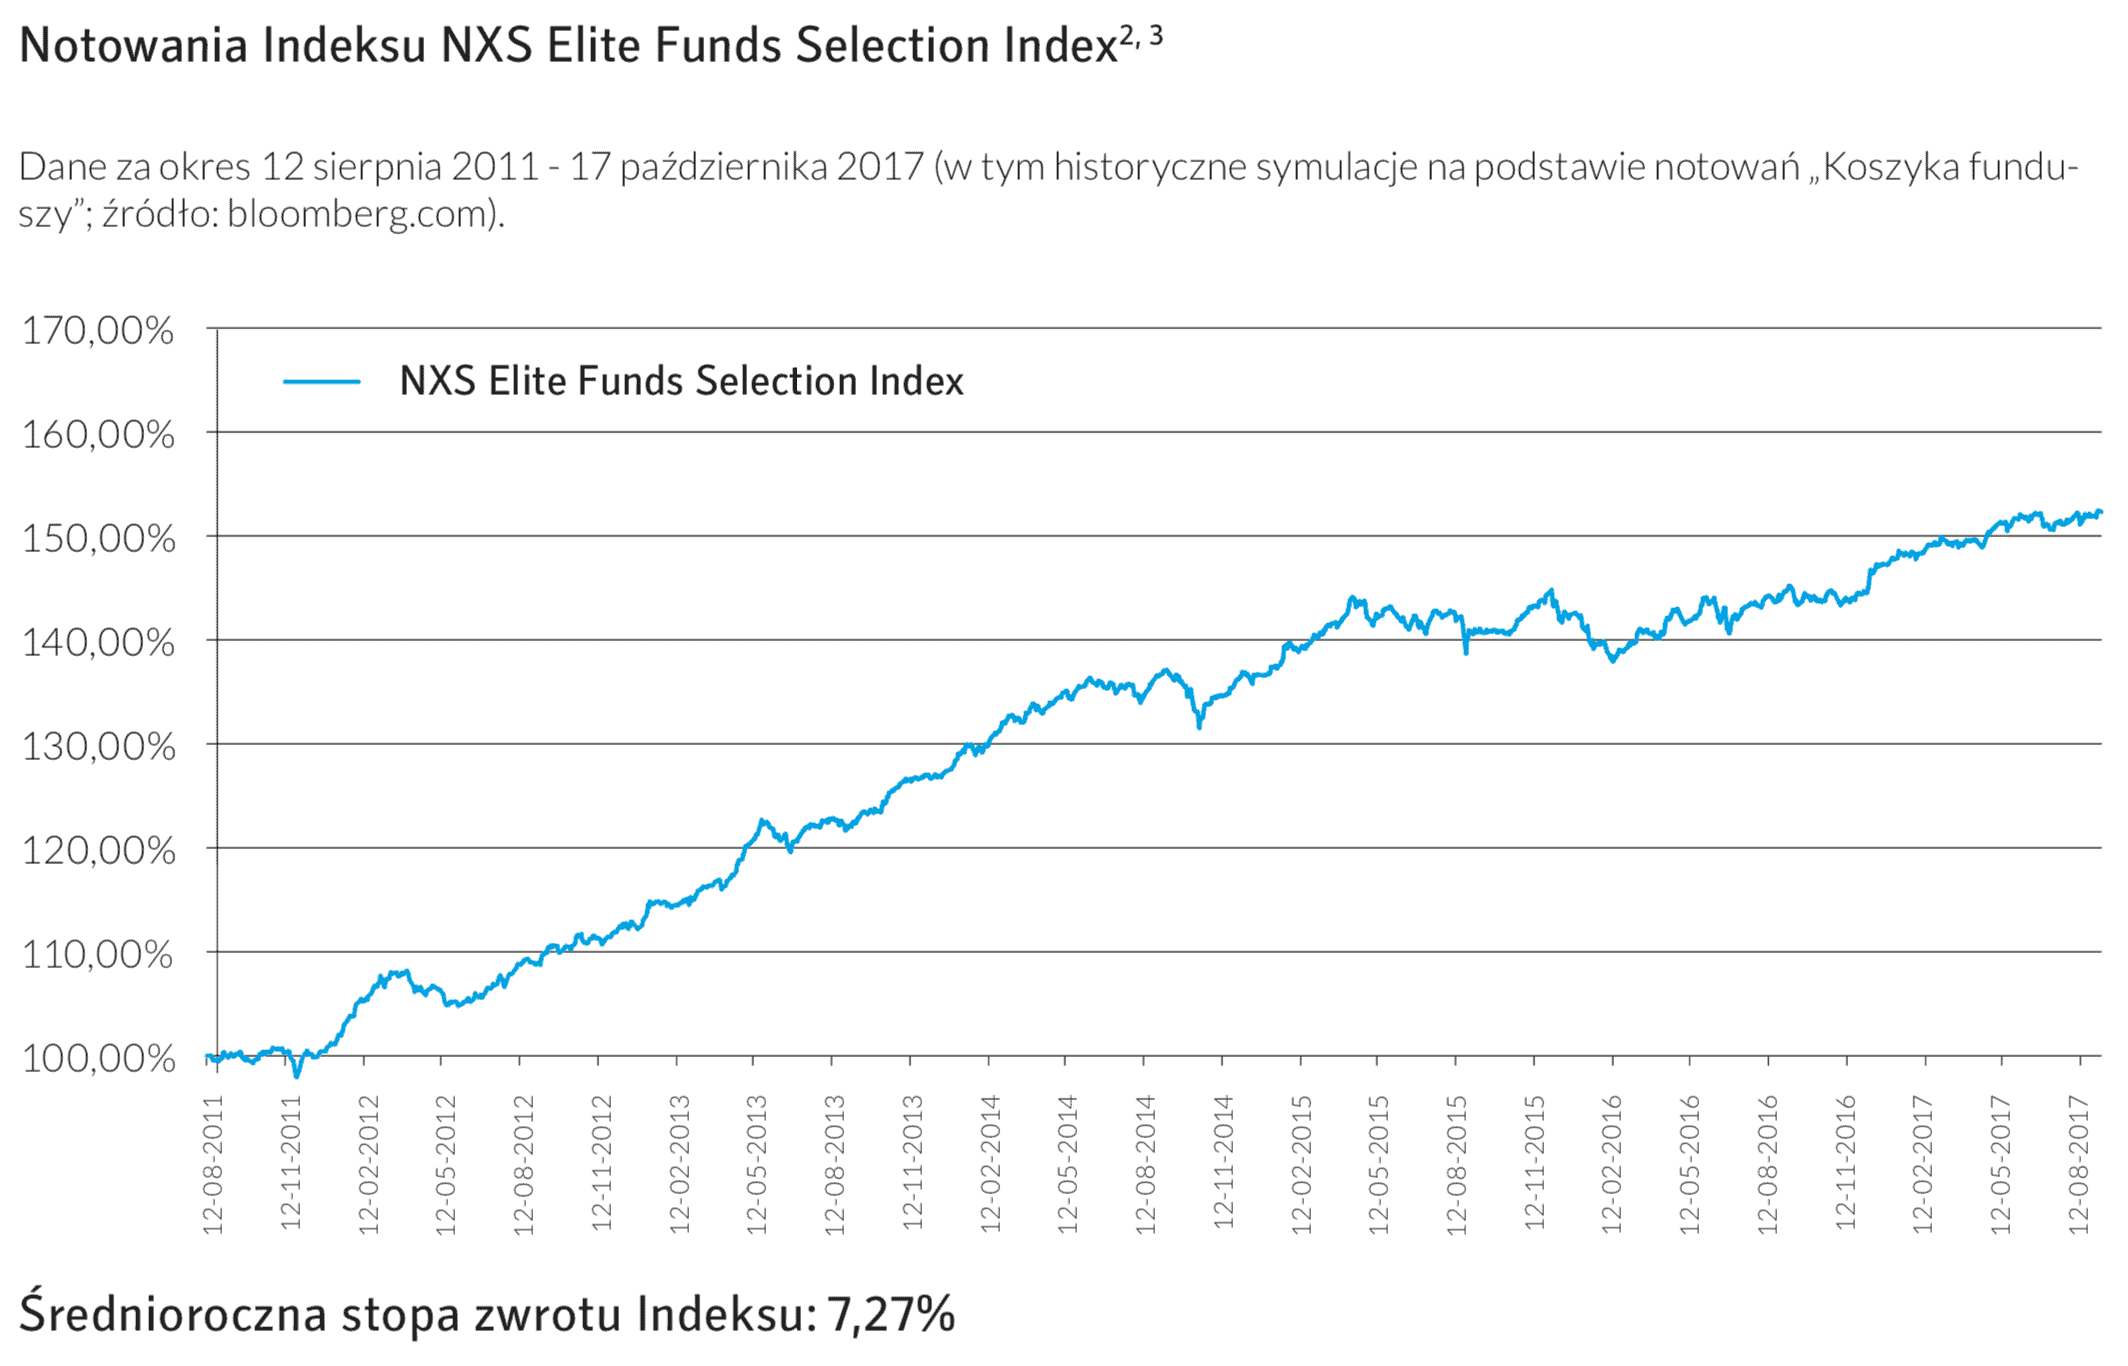 NXS-Elite-Funds-Selection-Index